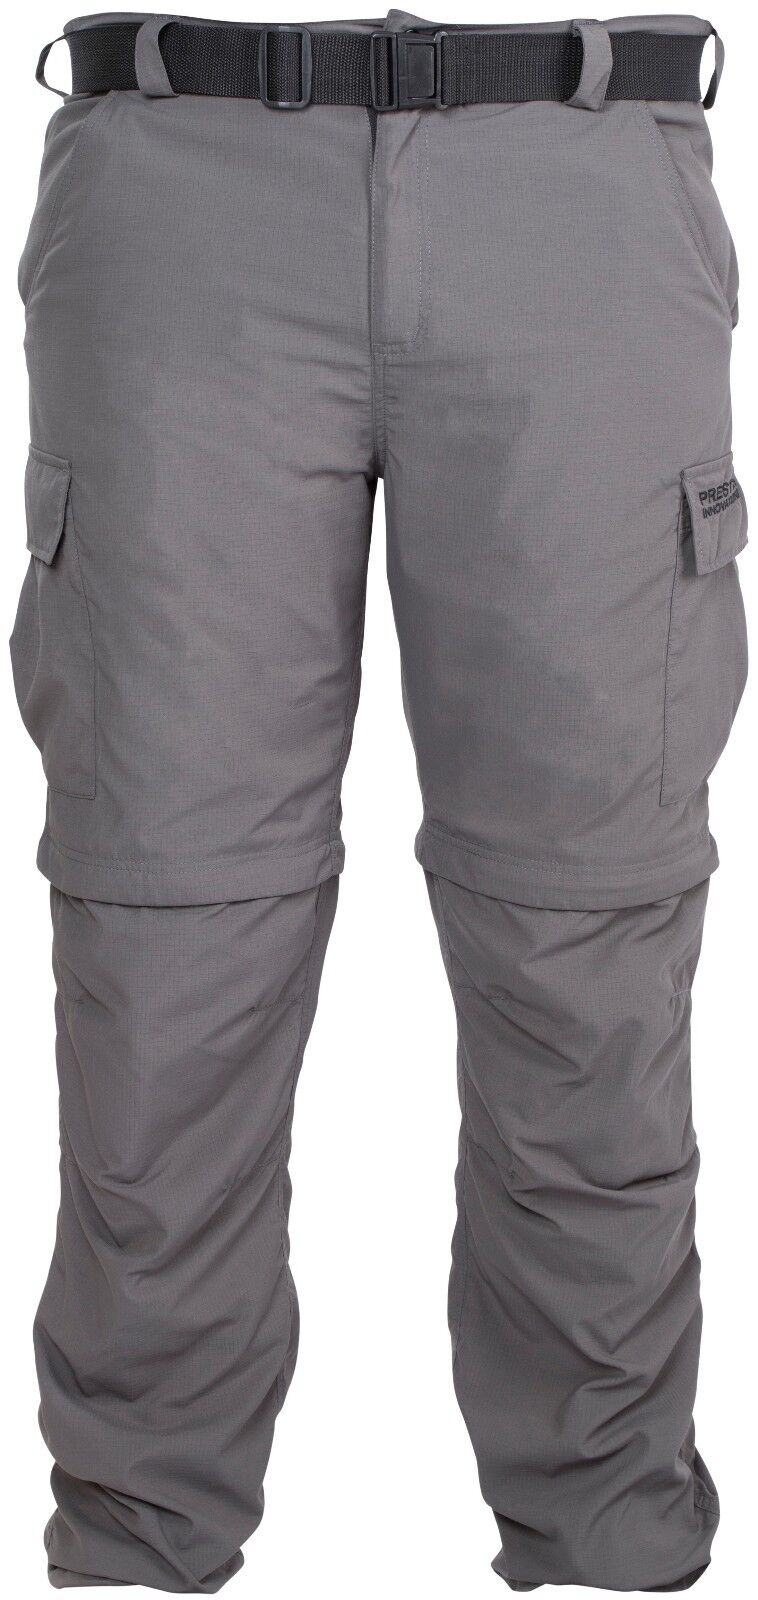 Brand New Preston Innovations Zip Off Cargo Pants Trousers - All Sizes Available